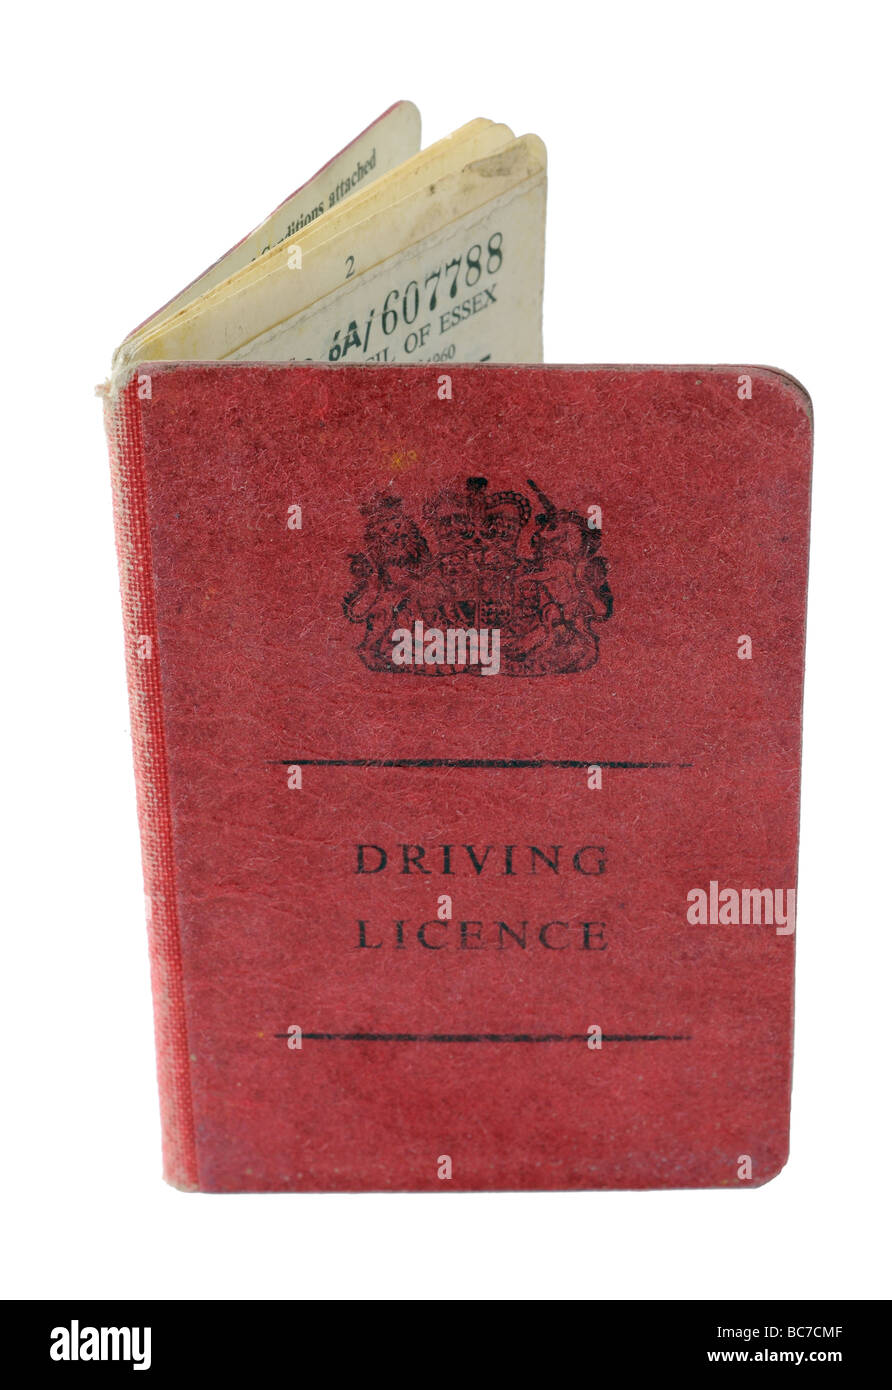 An old 1960s UK driving licence - Stock Image